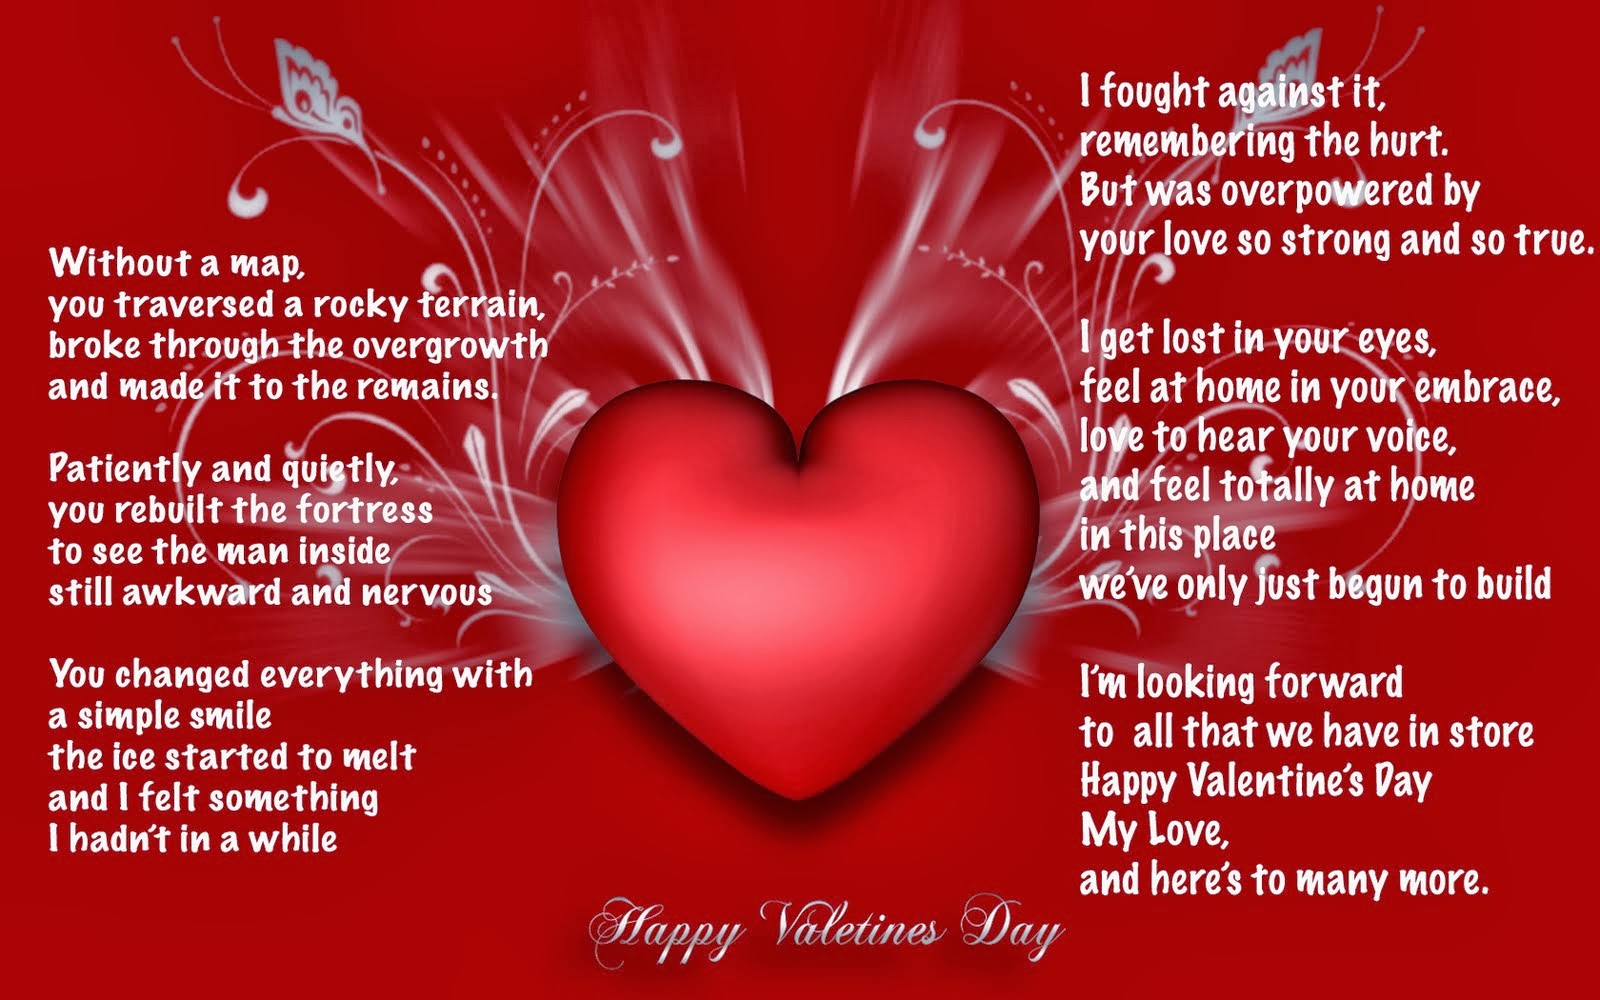 Happy Valentines Day Love Wishes For Boyfriend Daily Roabox